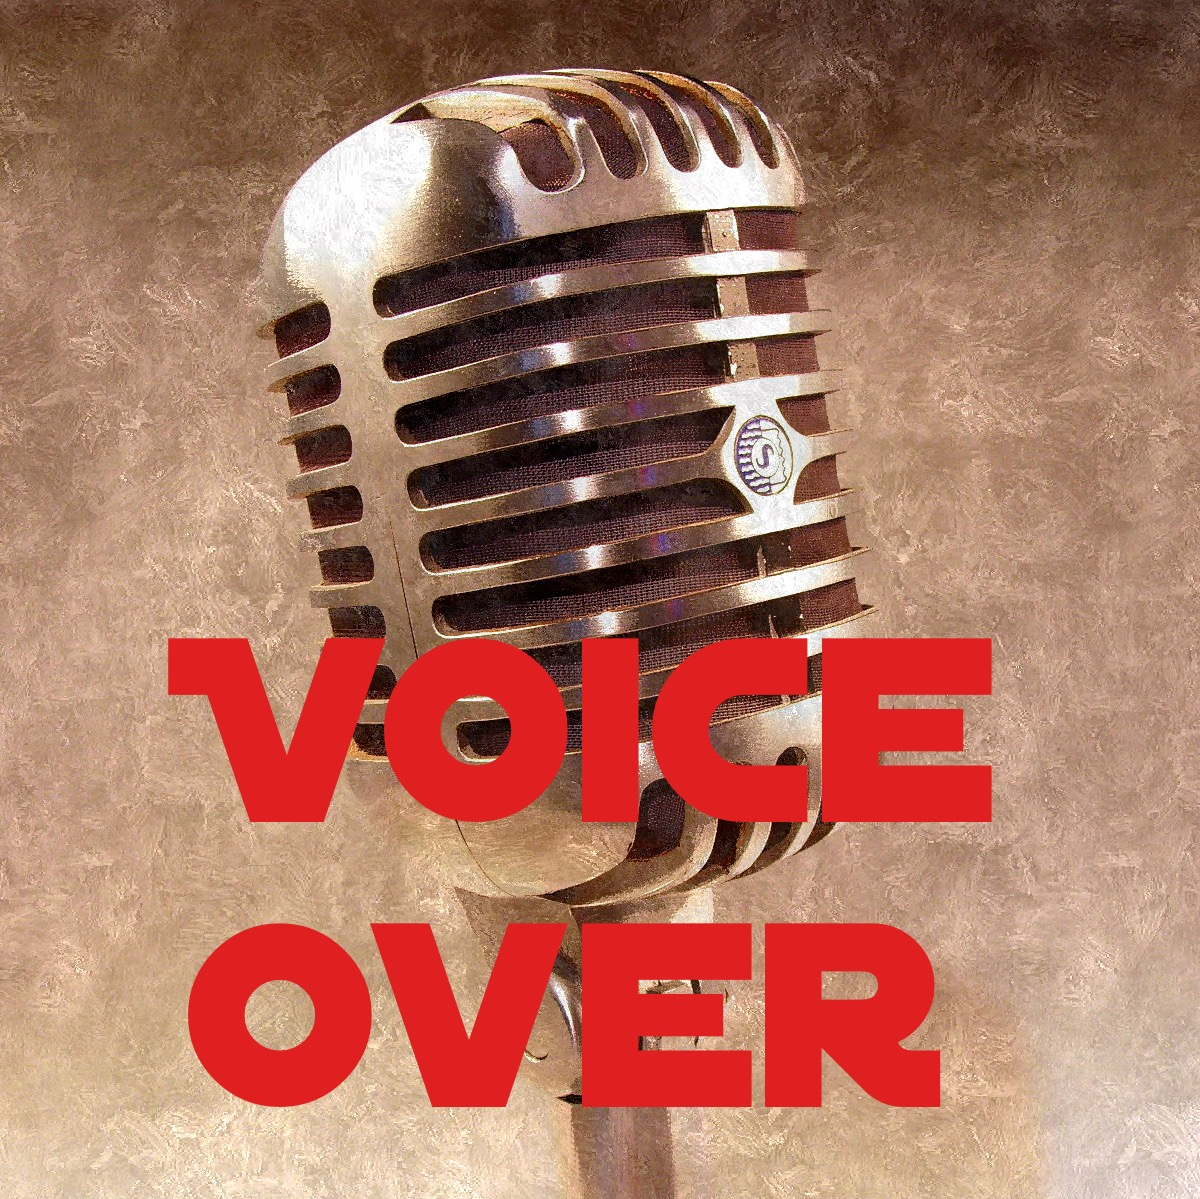 Voice over 200 words in a deep professional voice English